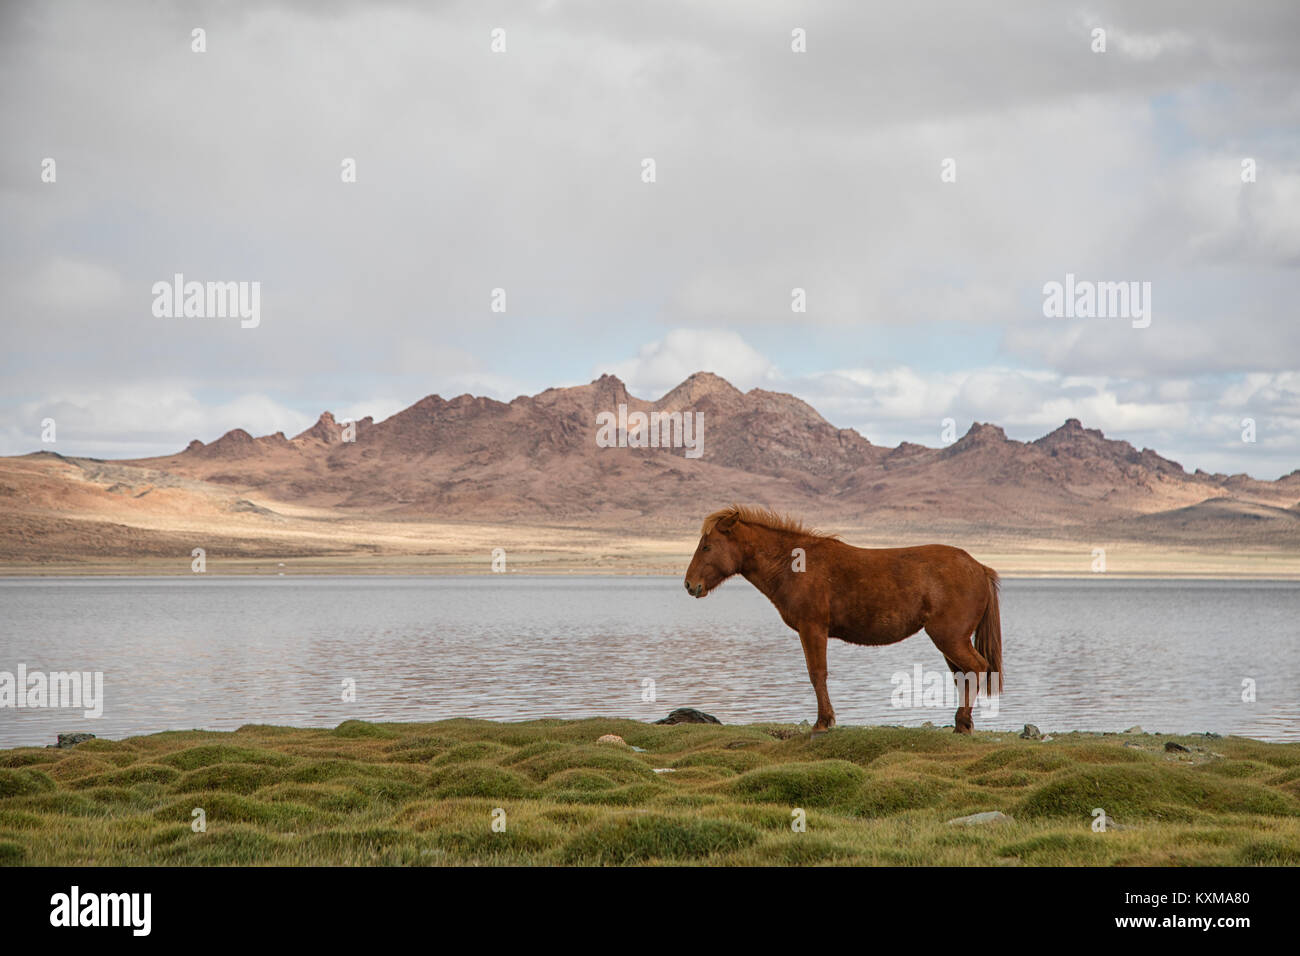 Mongolian horse thinking about horse things by the lake - Stock Image